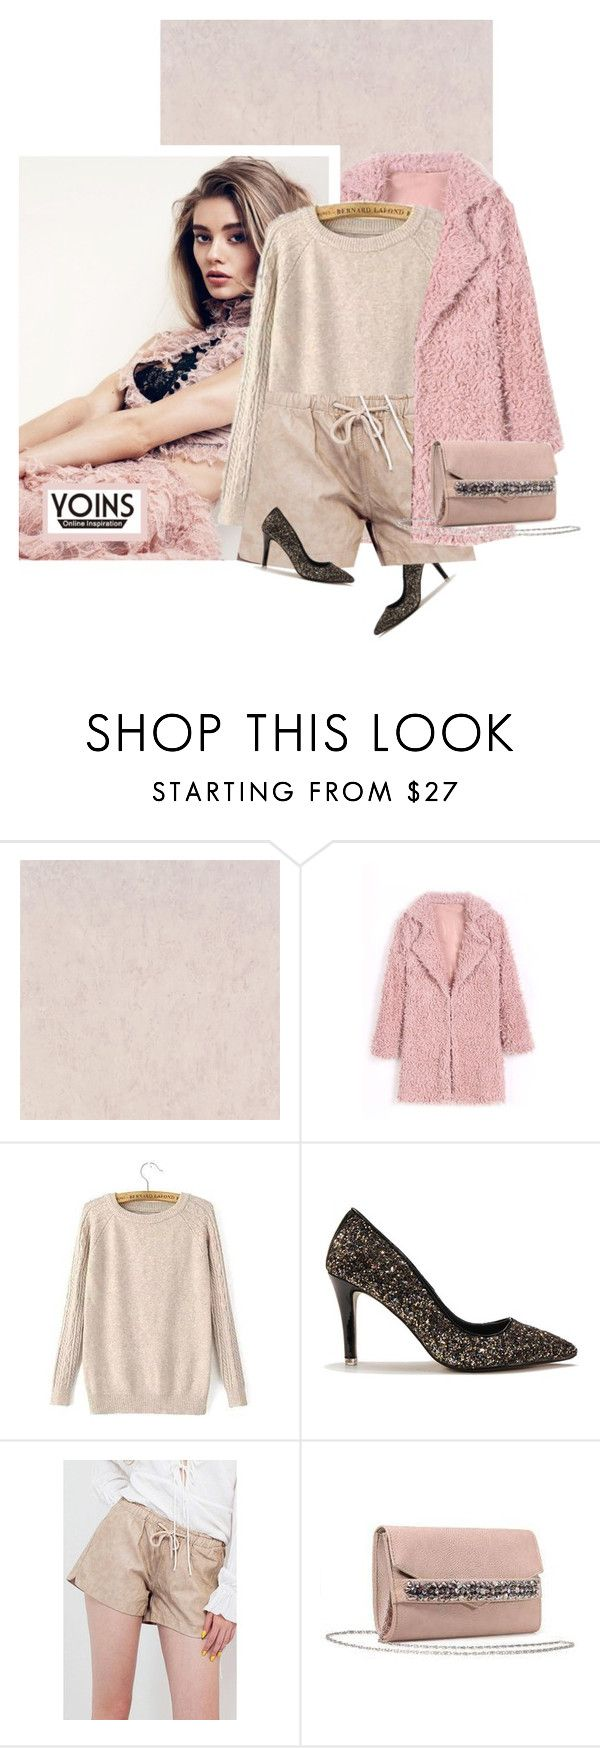 """""""Yoins 4"""" by chebear ❤ liked on Polyvore featuring yoins"""